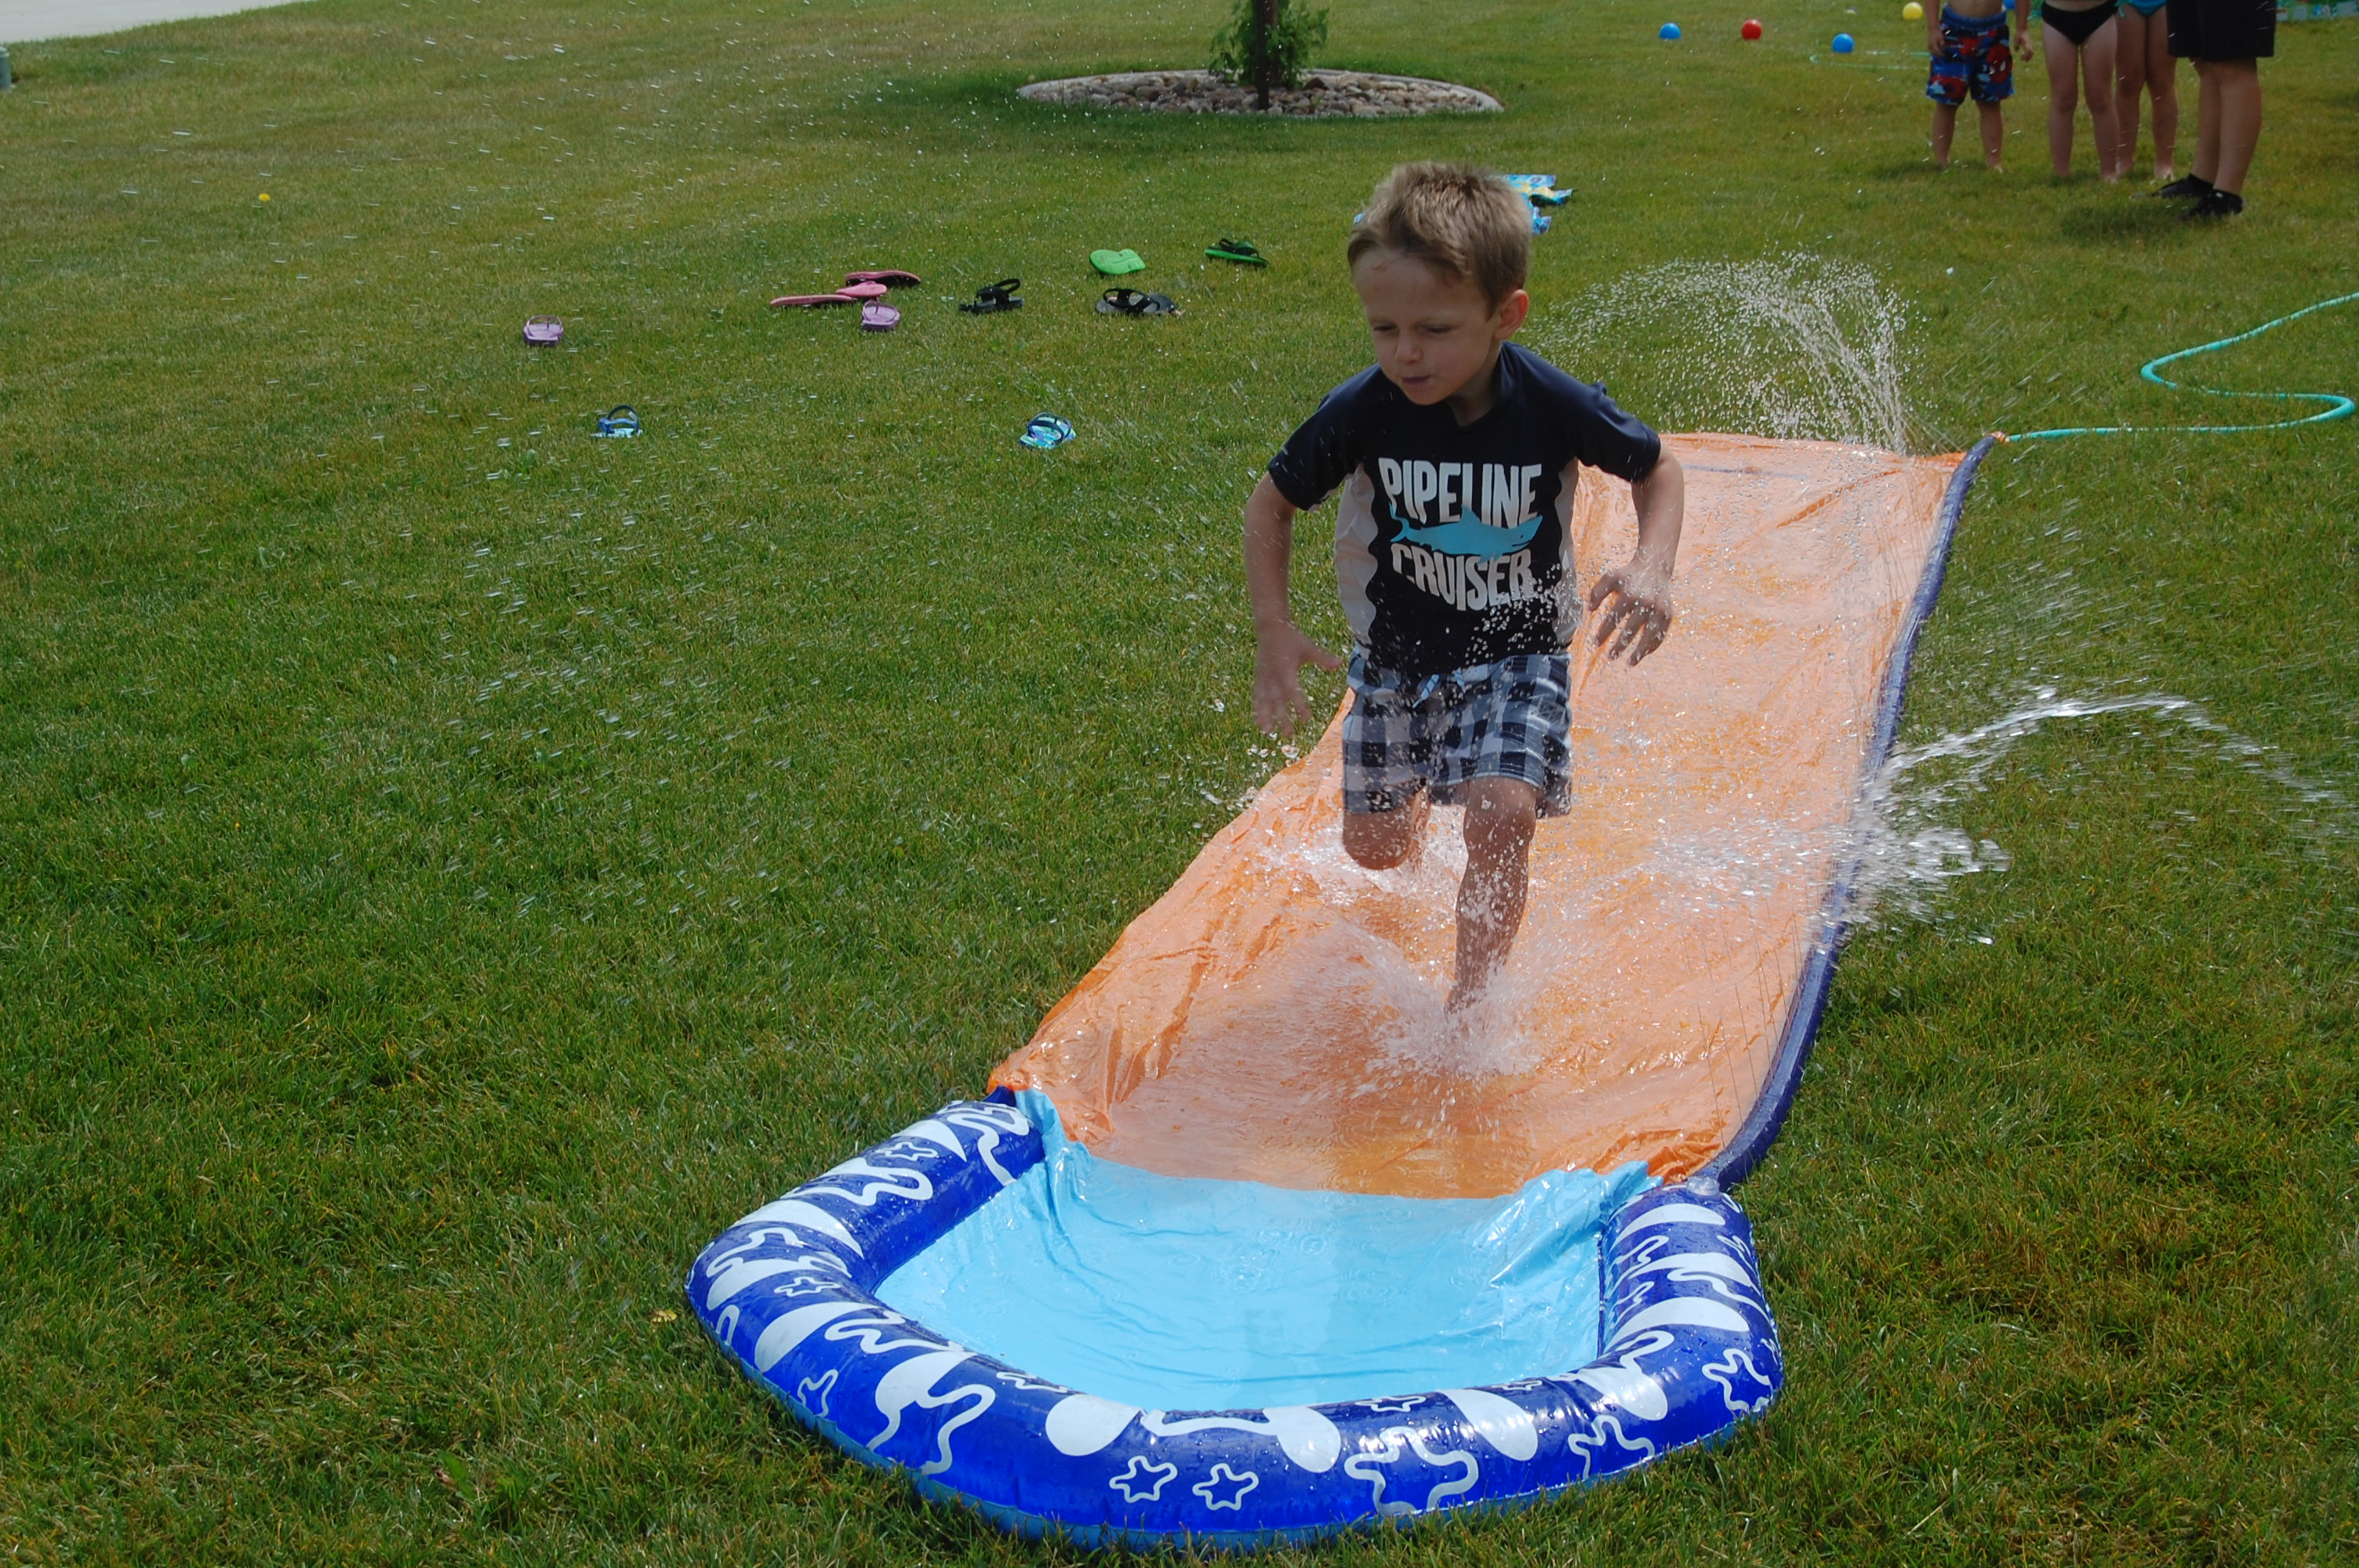 Samuel on the slip n slide